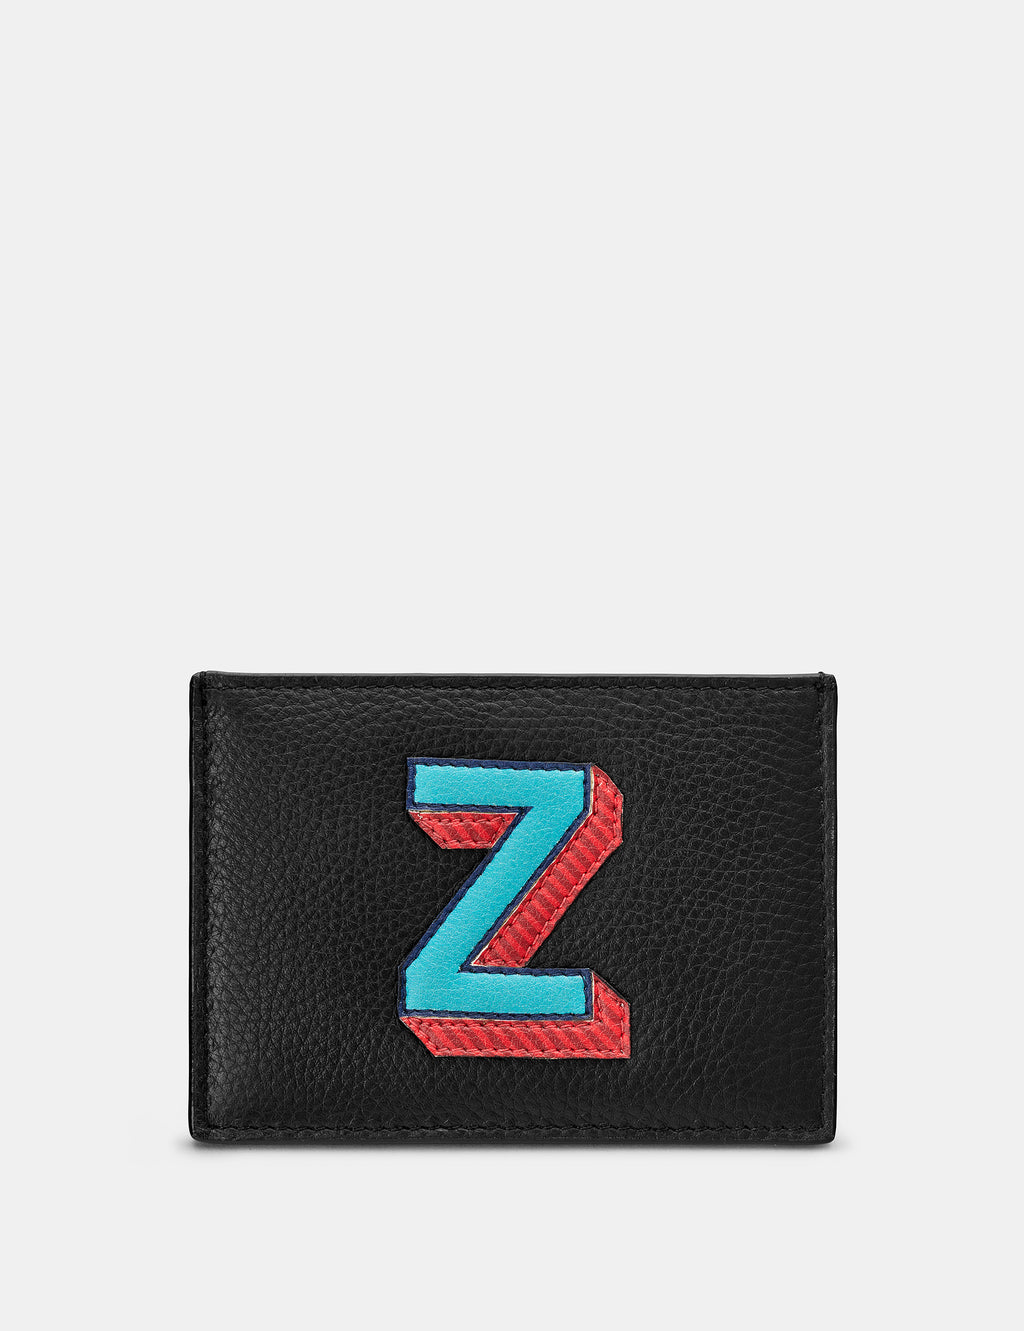 Z Initial Black Leather Card Holder